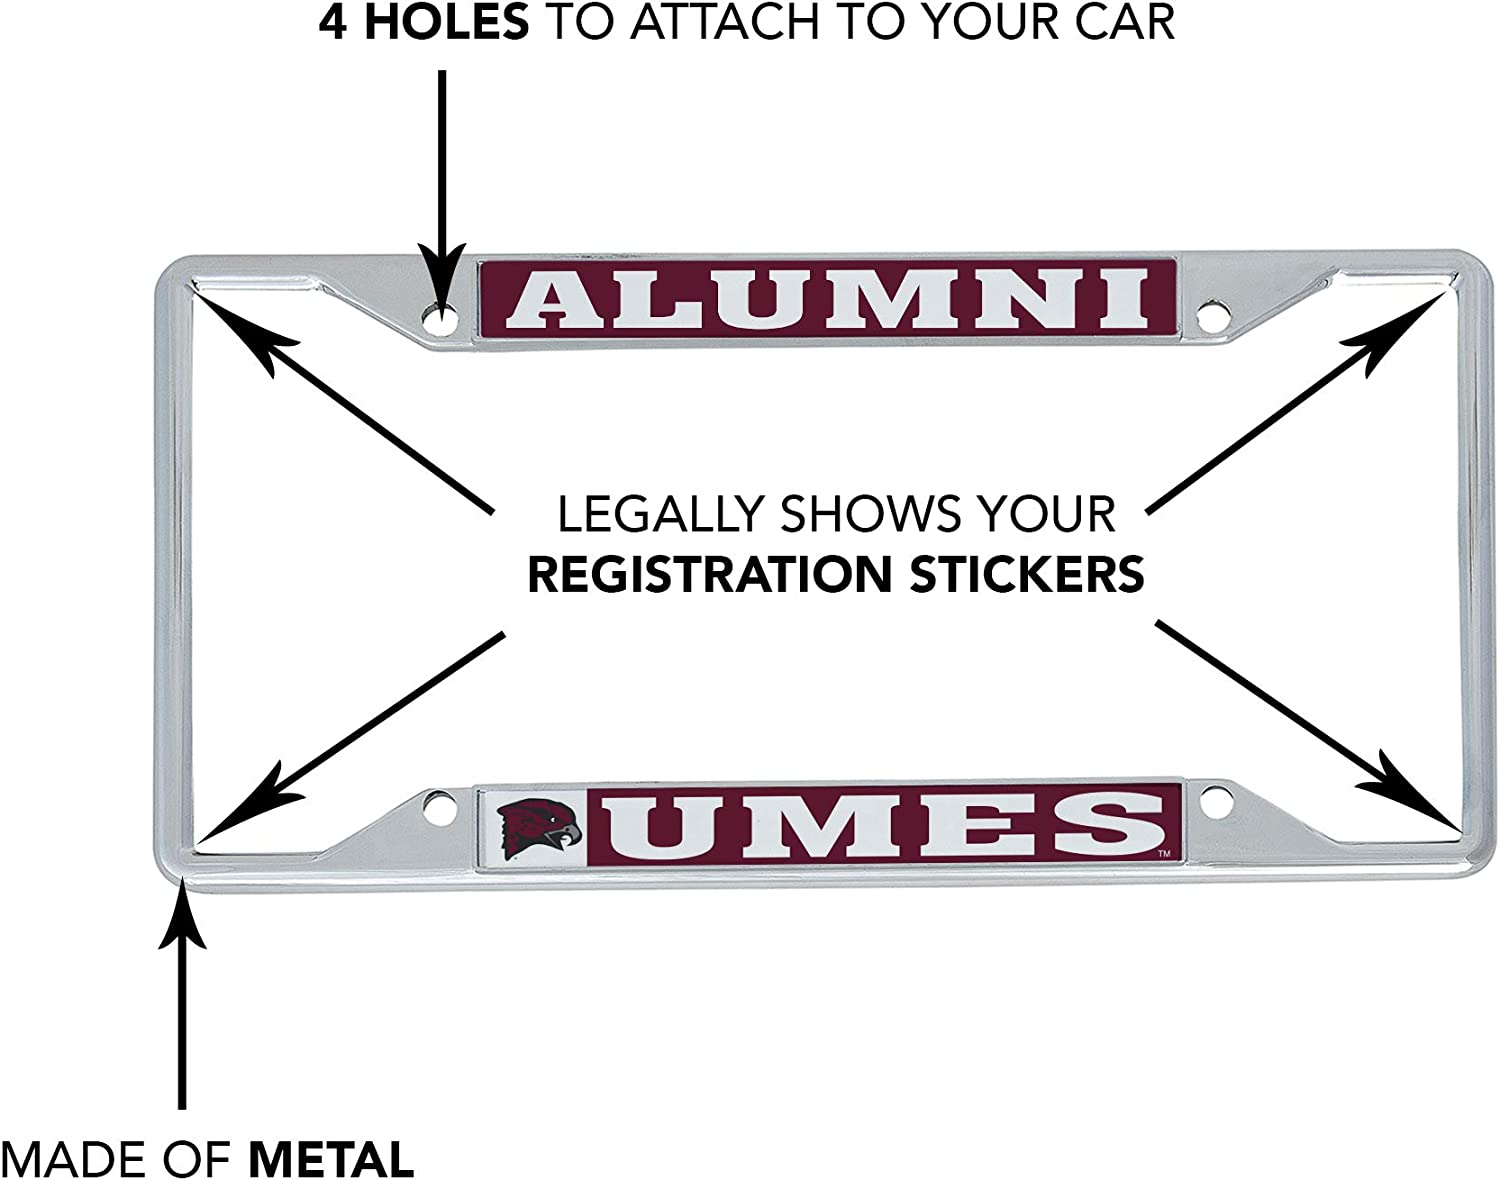 Alumni Desert Cactus University of Maryland Eastern Shore UMES Hawks NCAA Metal License Plate Frame for Front Back of Car Officially Licensed